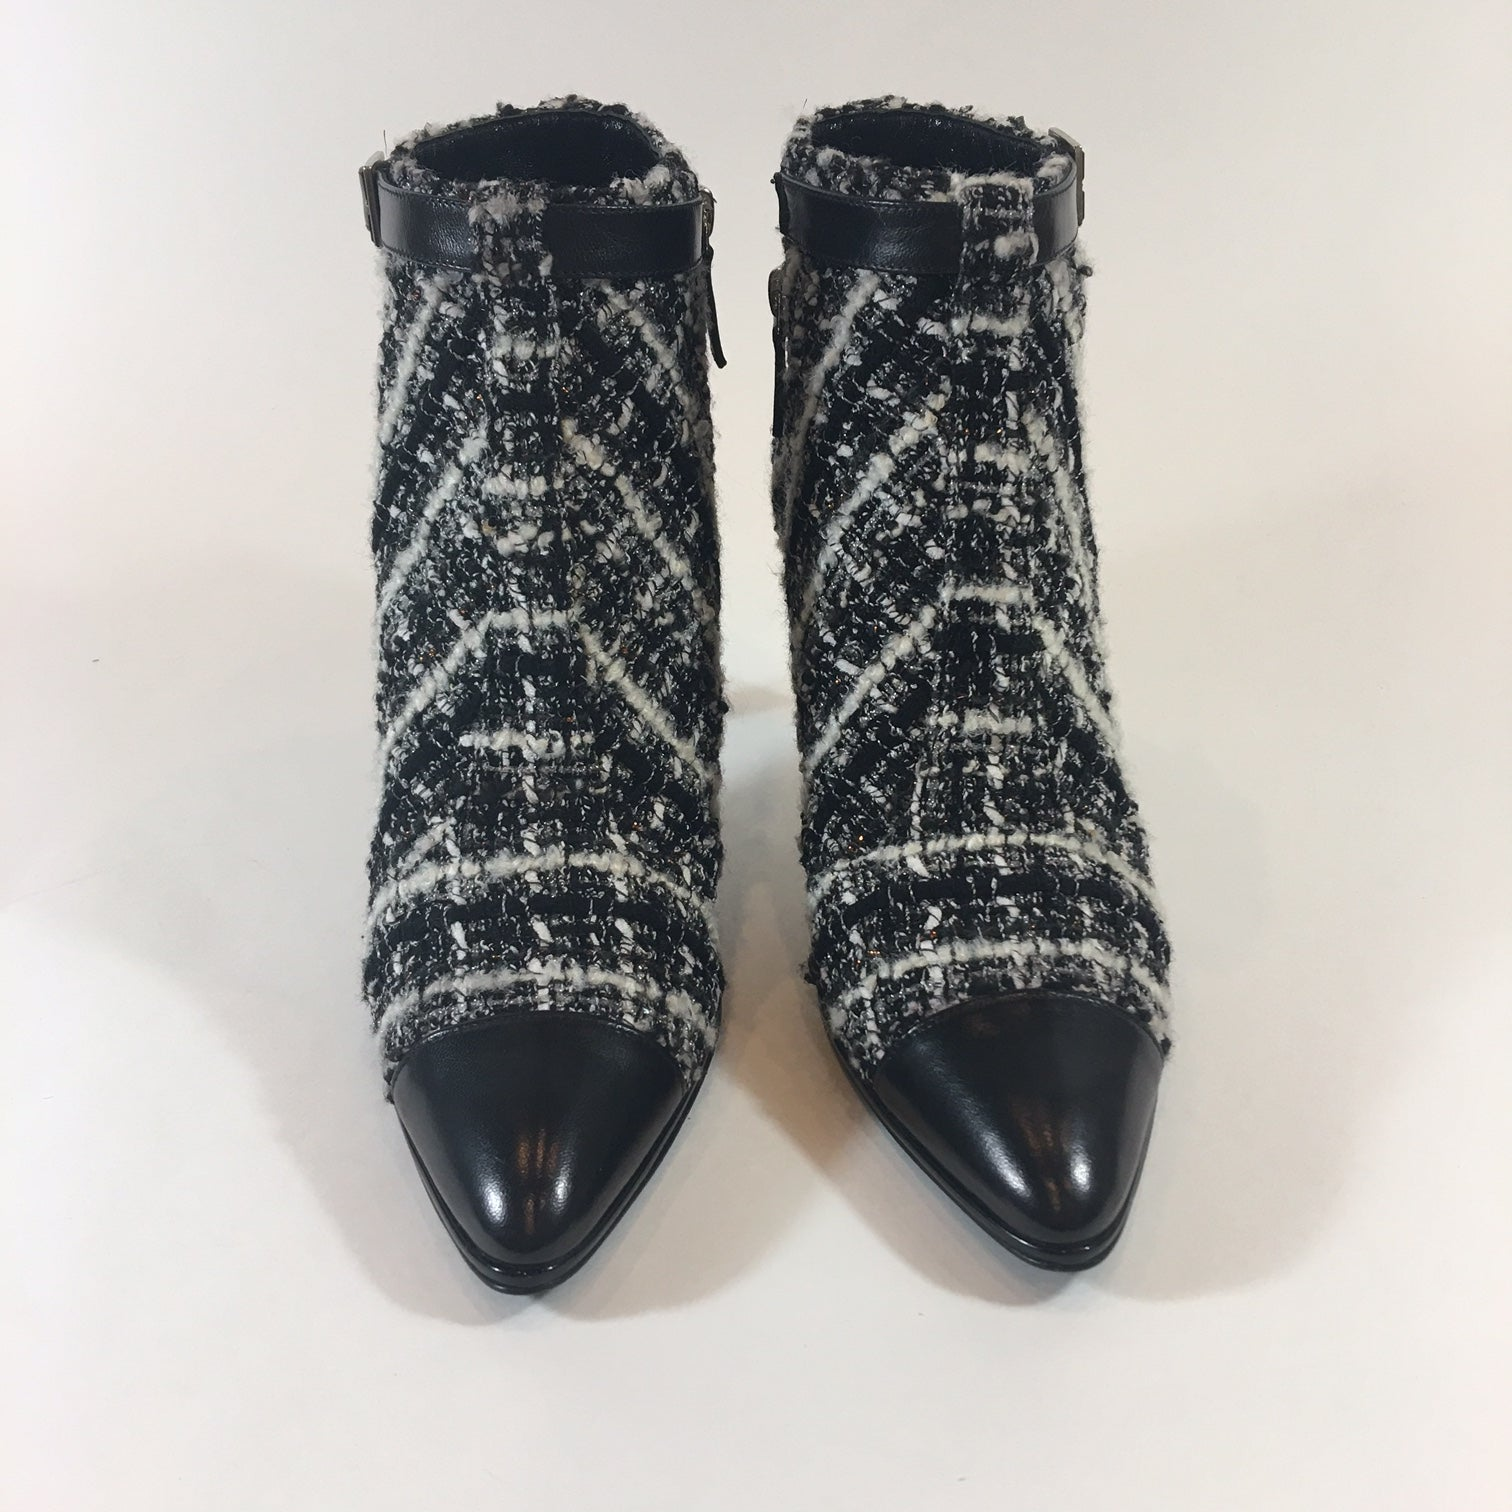 be0dcc2d0ac Chanel Tweed Boucle Ankle Boots at 1stdibs